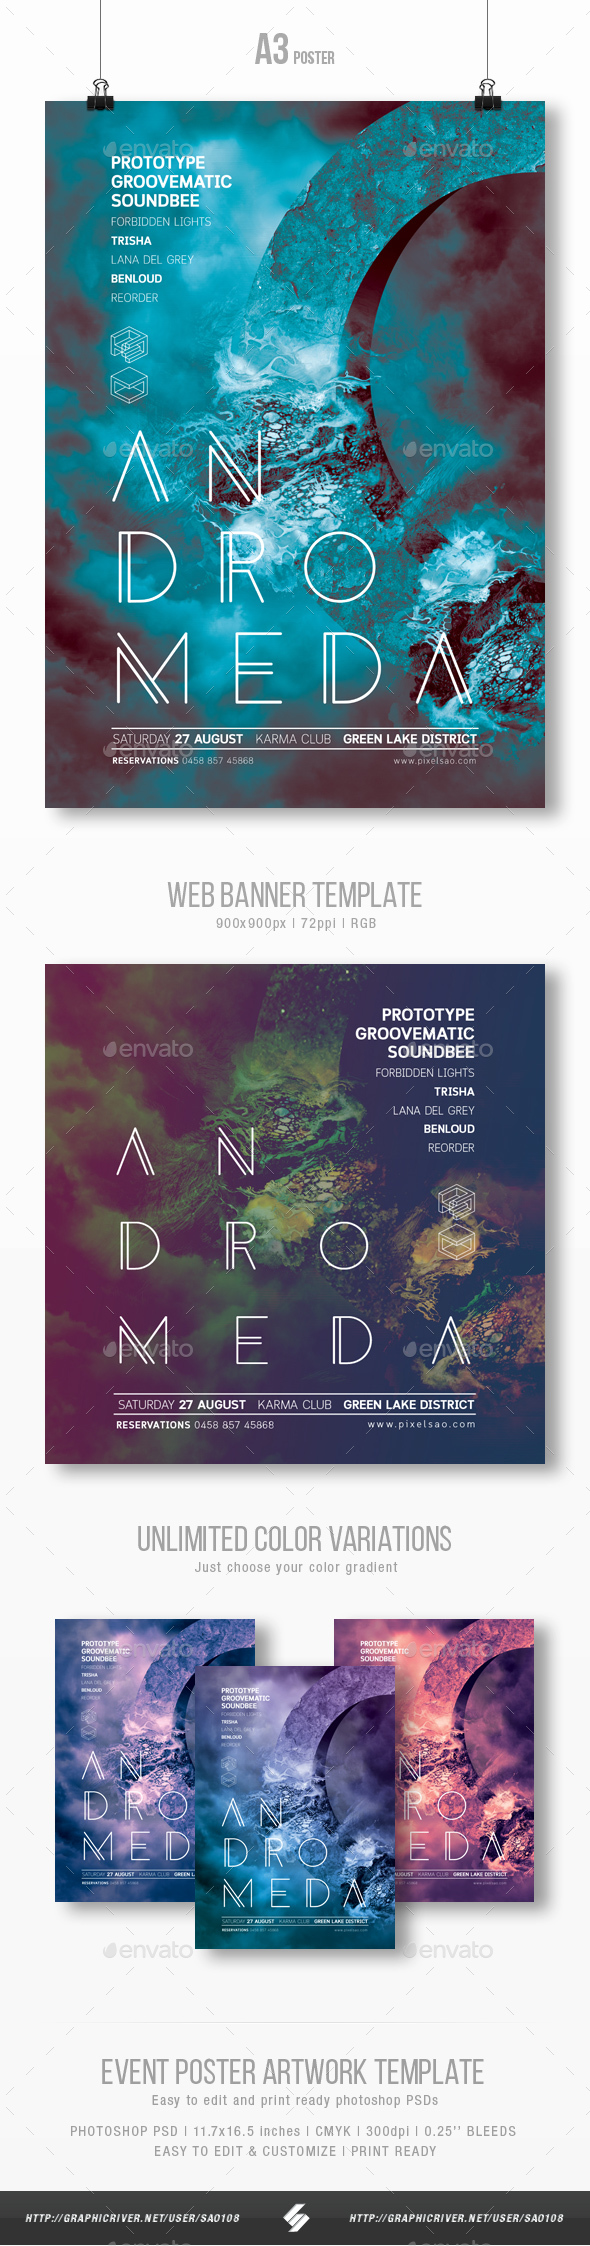 Andromeda - Progressive Party Flyer / Poster Artwork Template A3 - Clubs & Parties Events